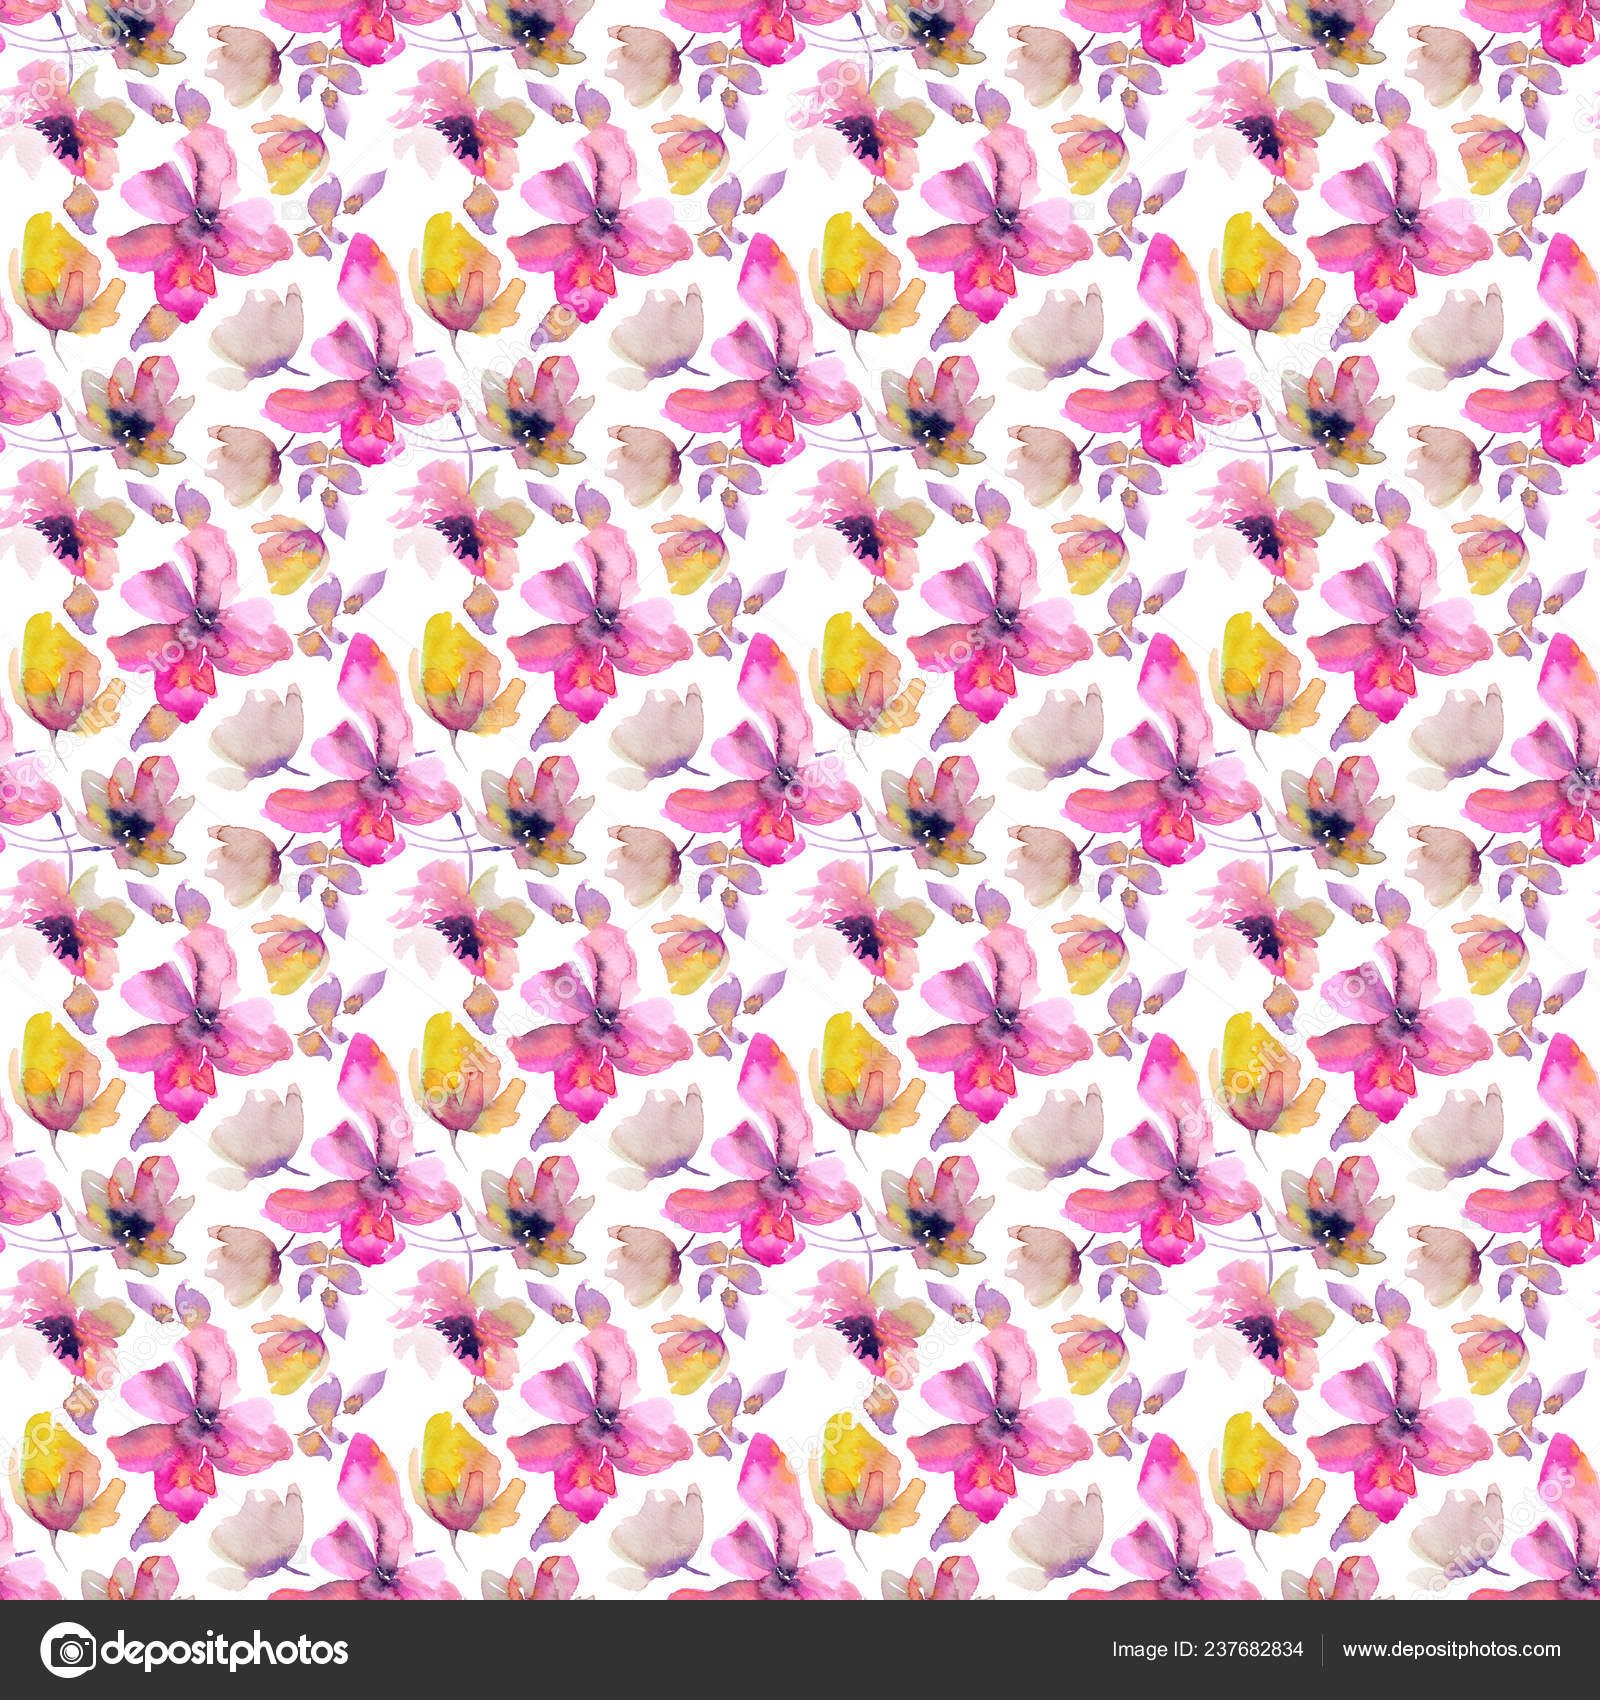 Hand Drawn Abstract Floral Wallpaper Stock Photo C Oaurea 237682834